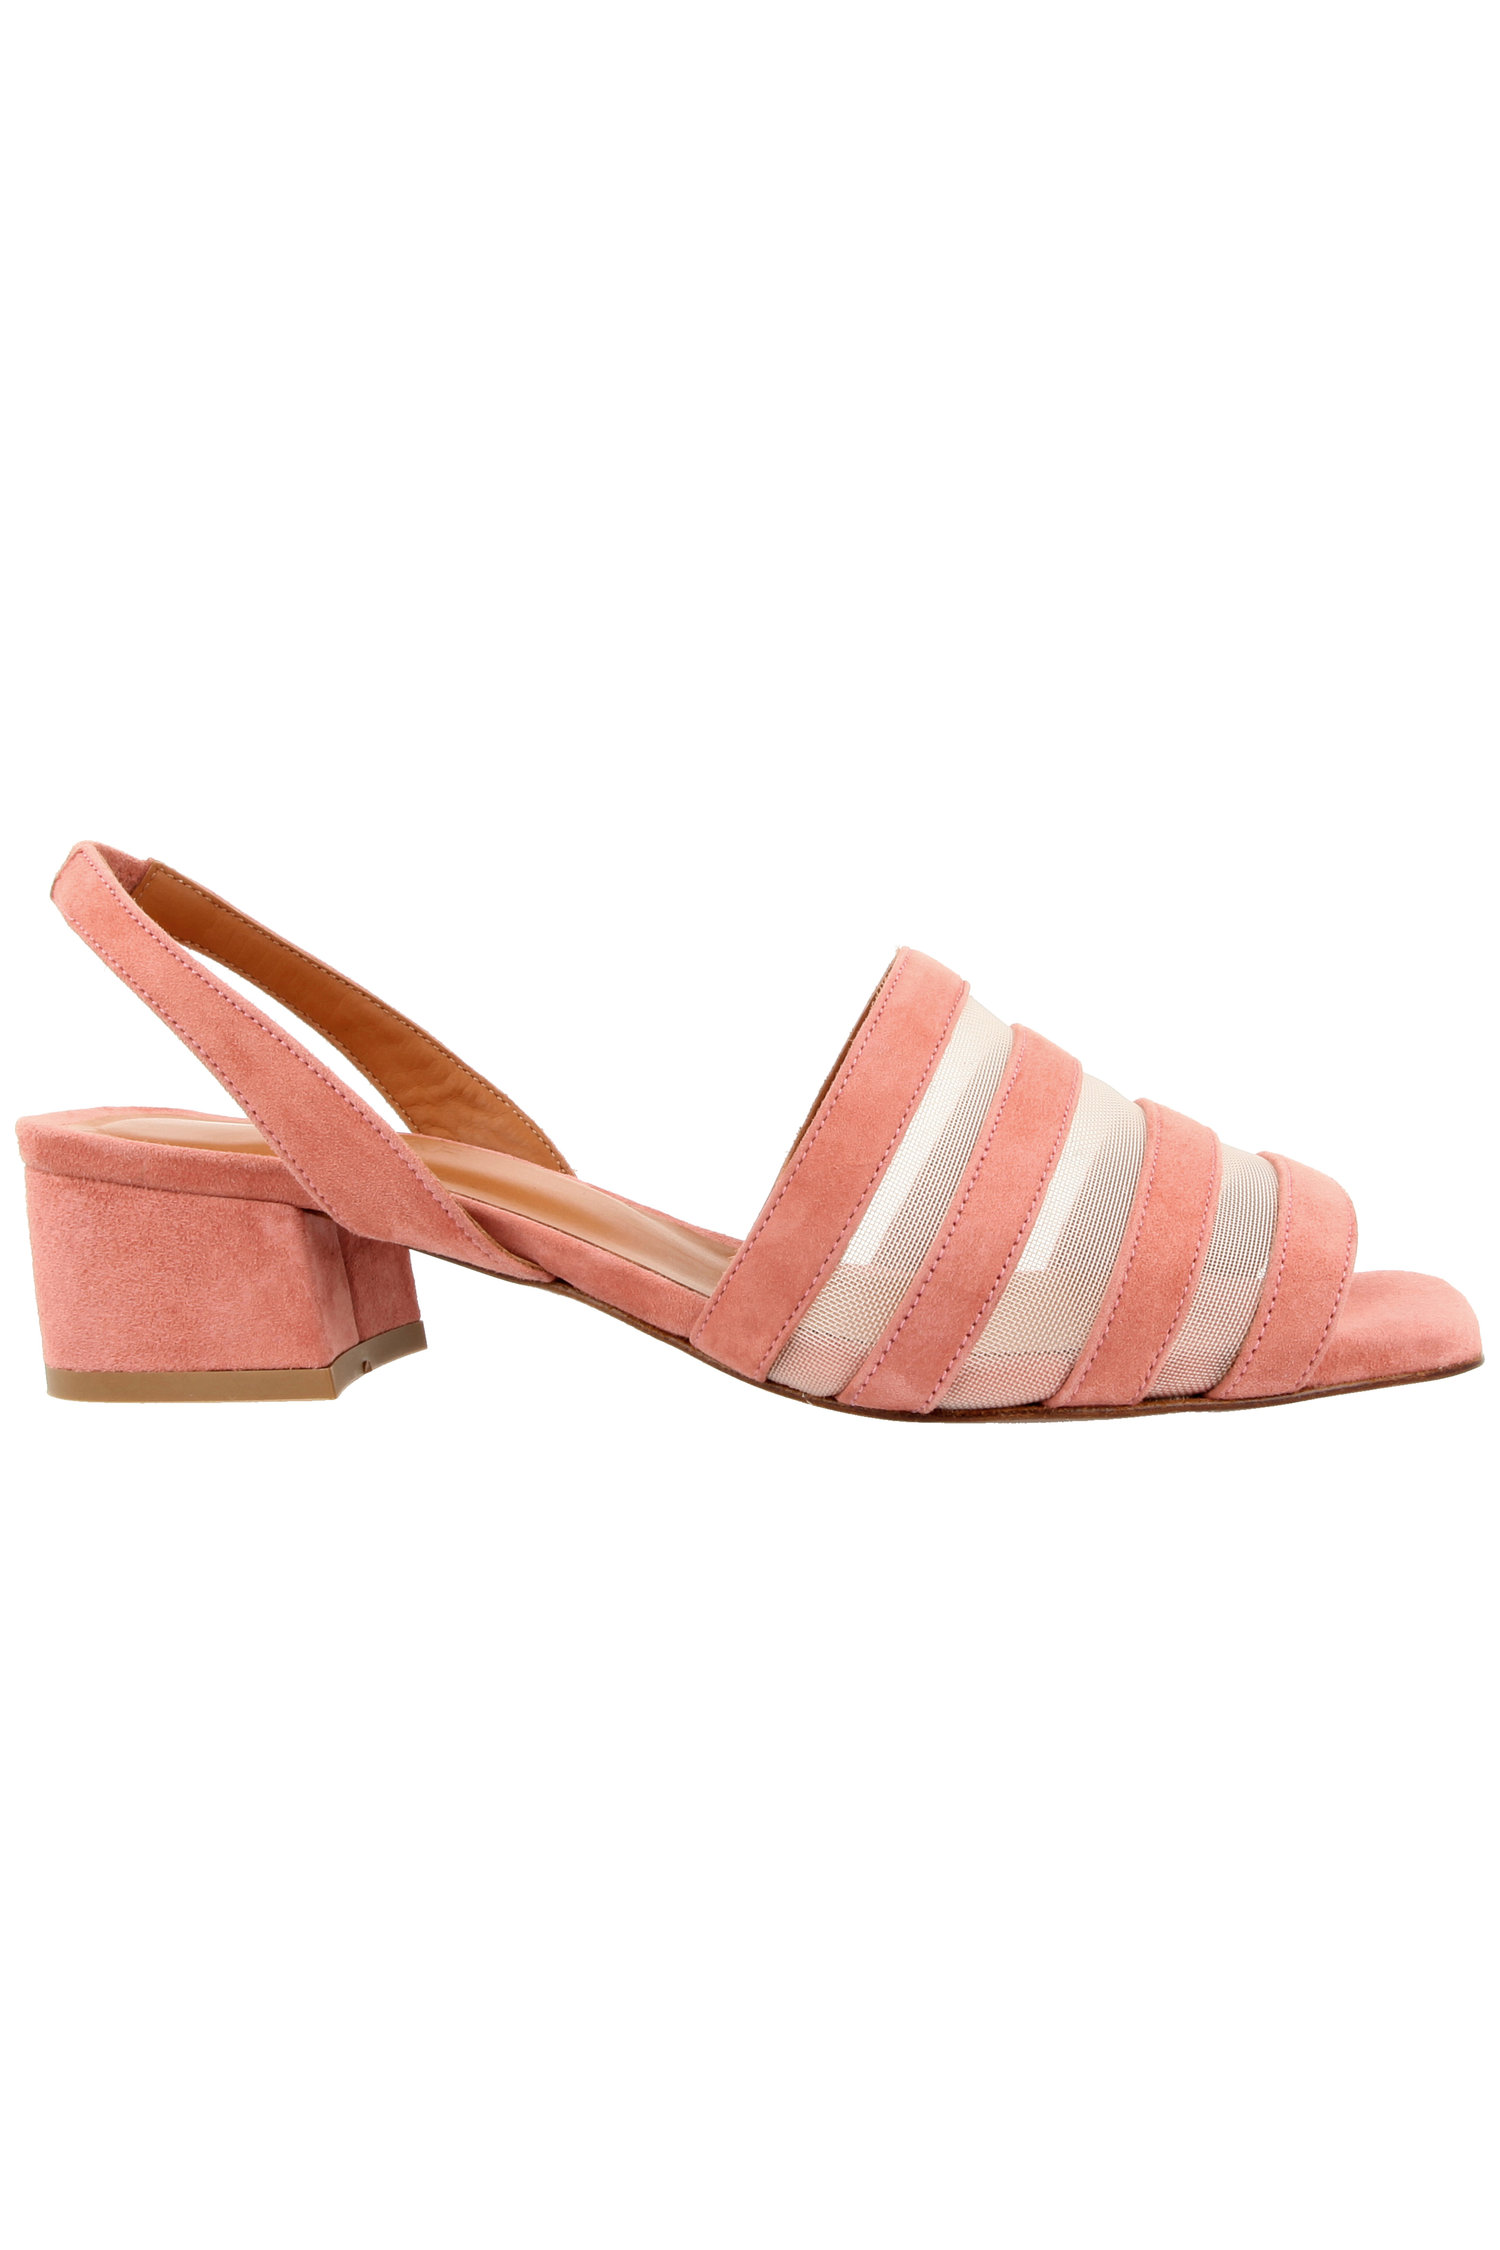 f96323ab77 Colleen Pink Suede Slingback Shoes With Mesh Panel — IMWIM